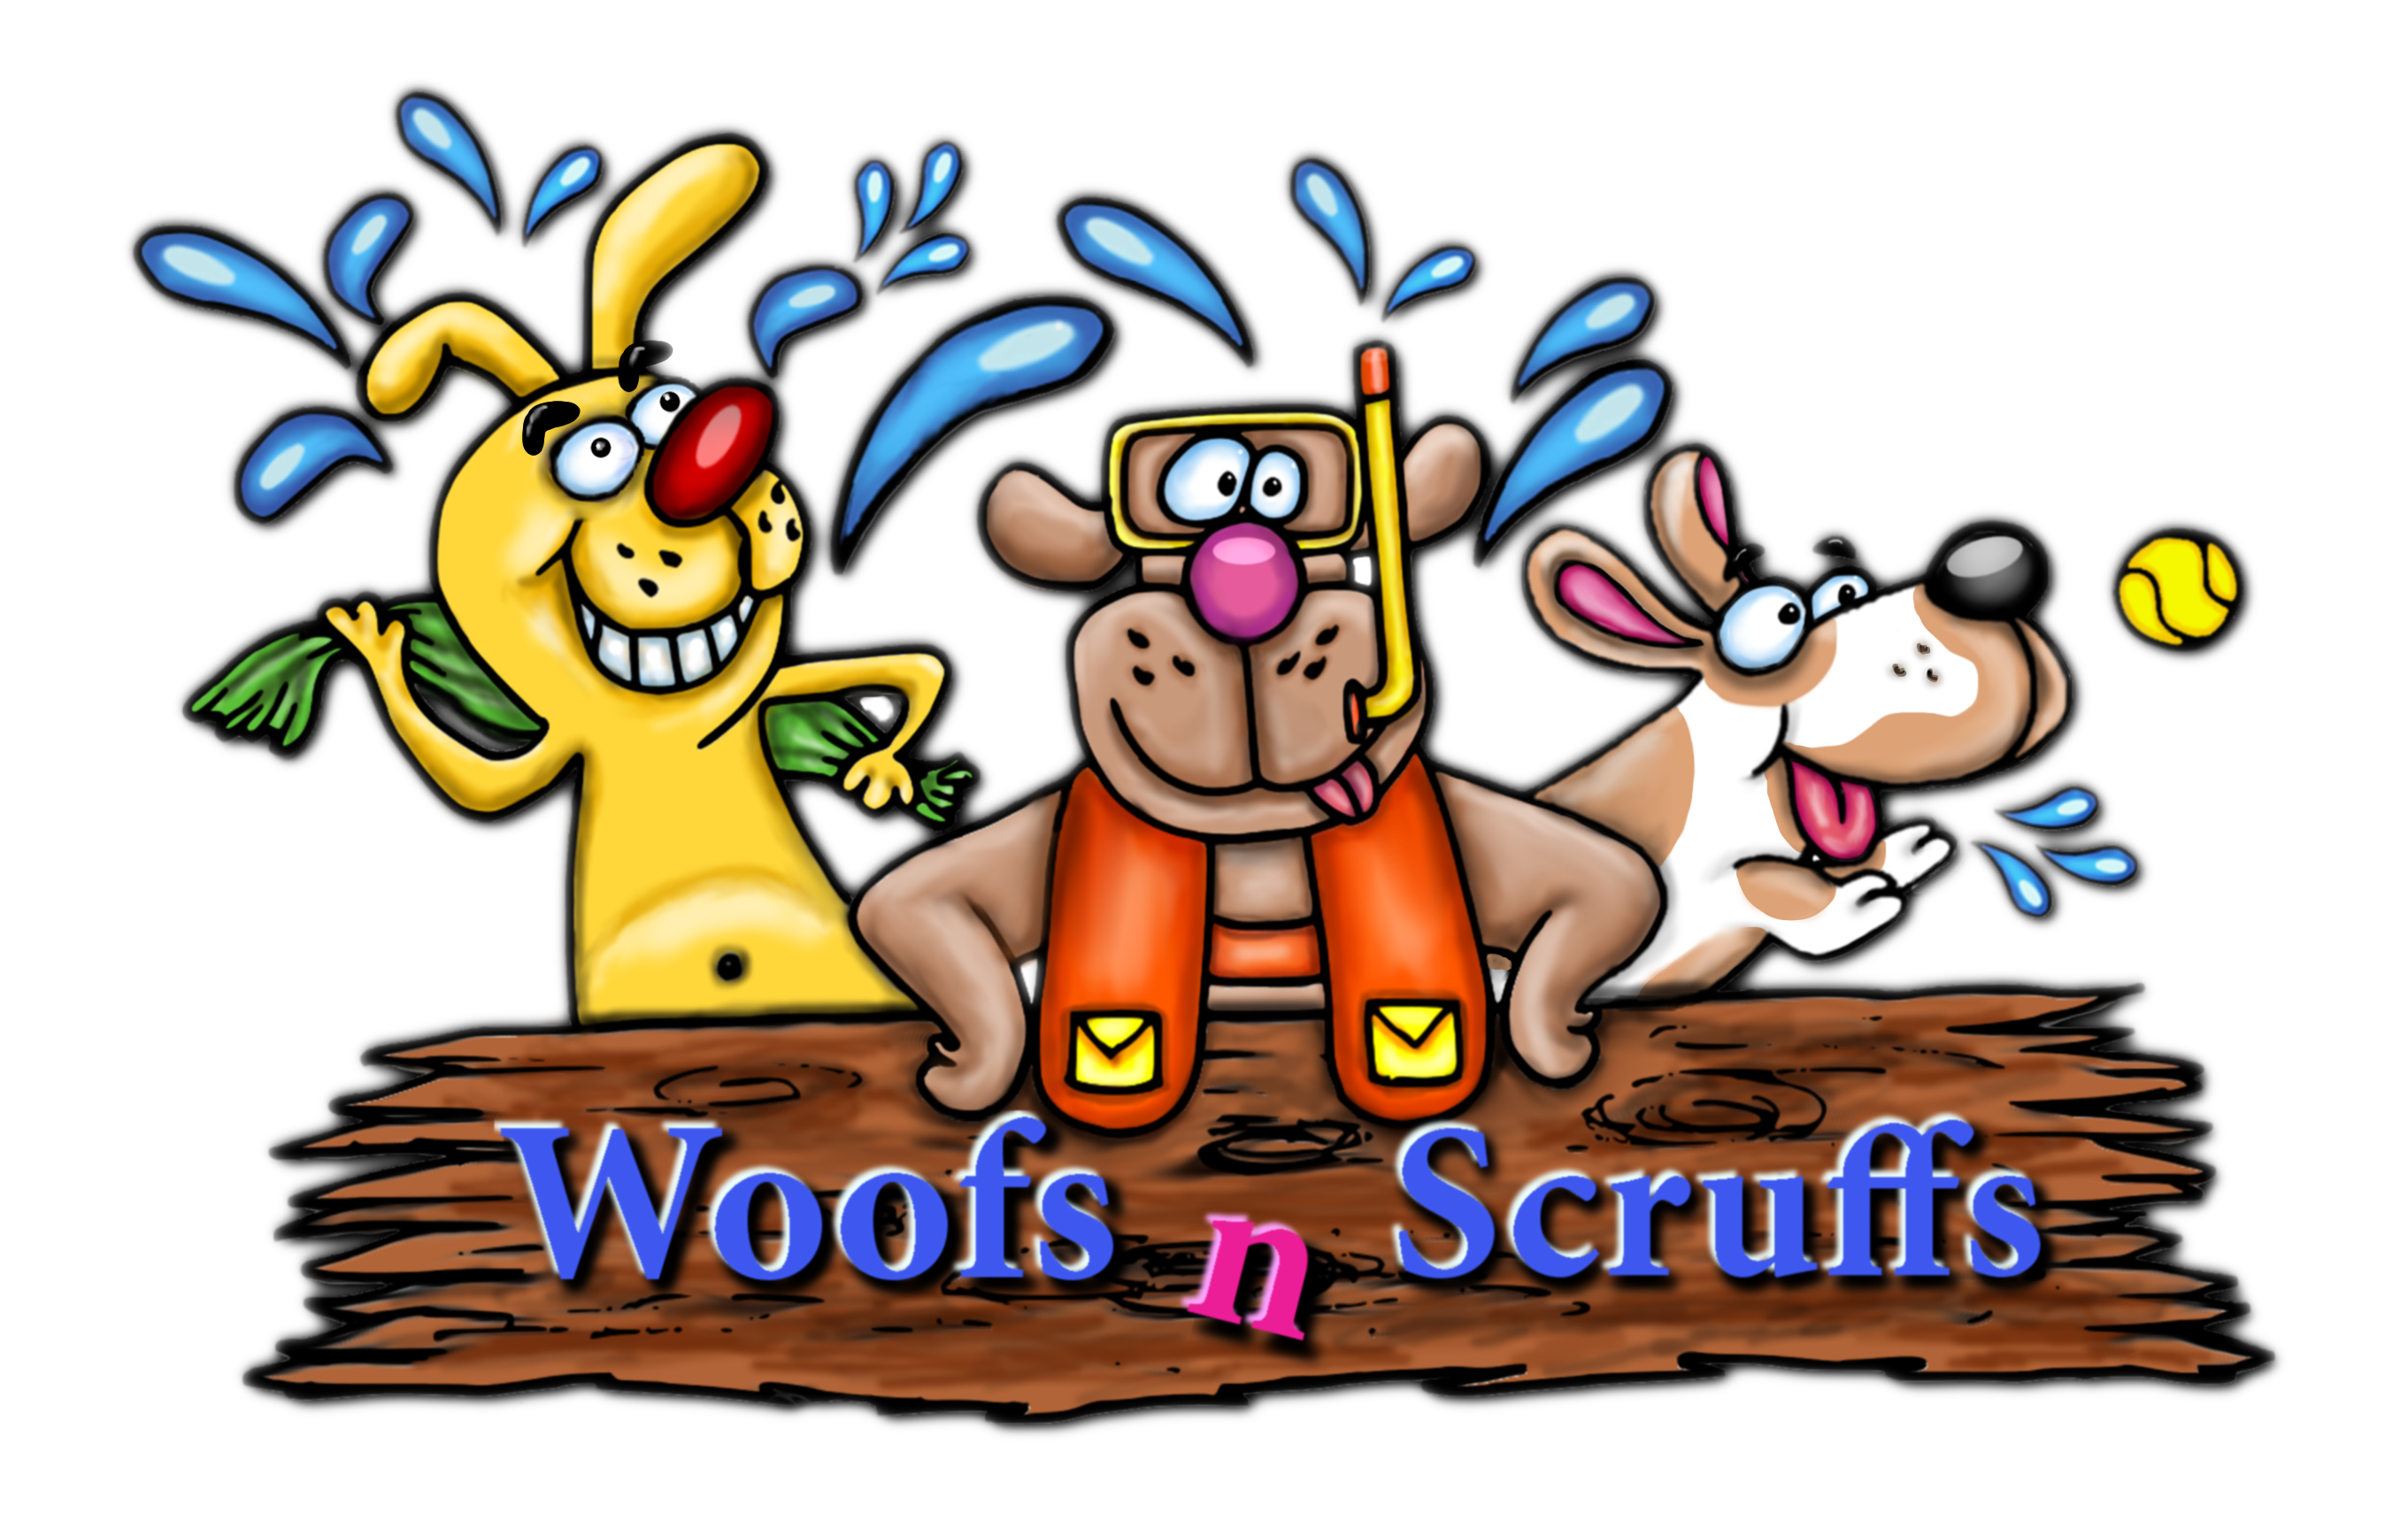 Woofs and Scruffs